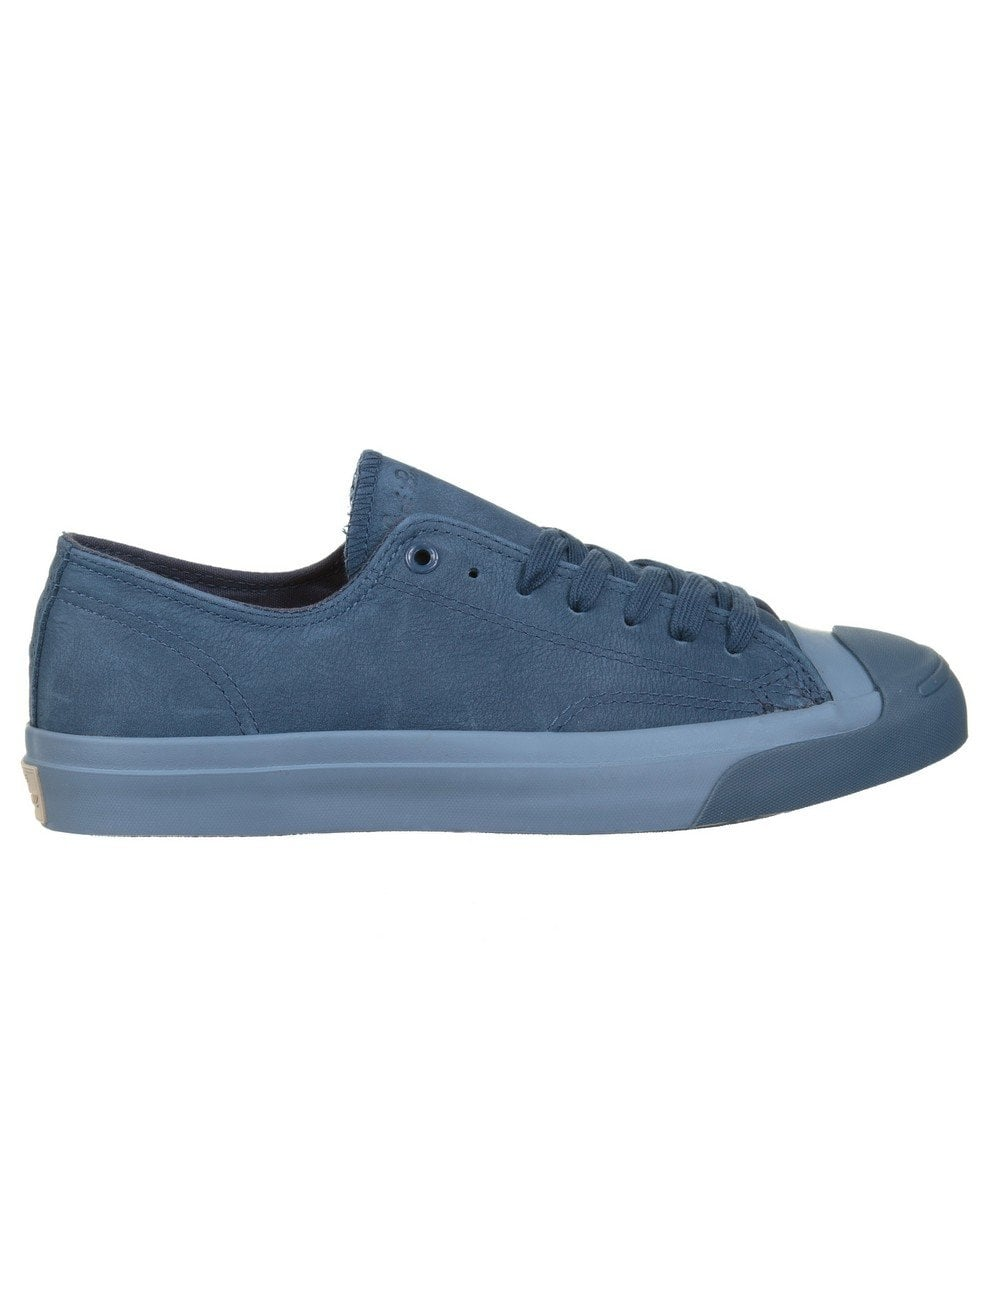 484aed54033b Converse Jack Purcell Jack Ox Shoes - Navy Navy - Footwear from Fat ...